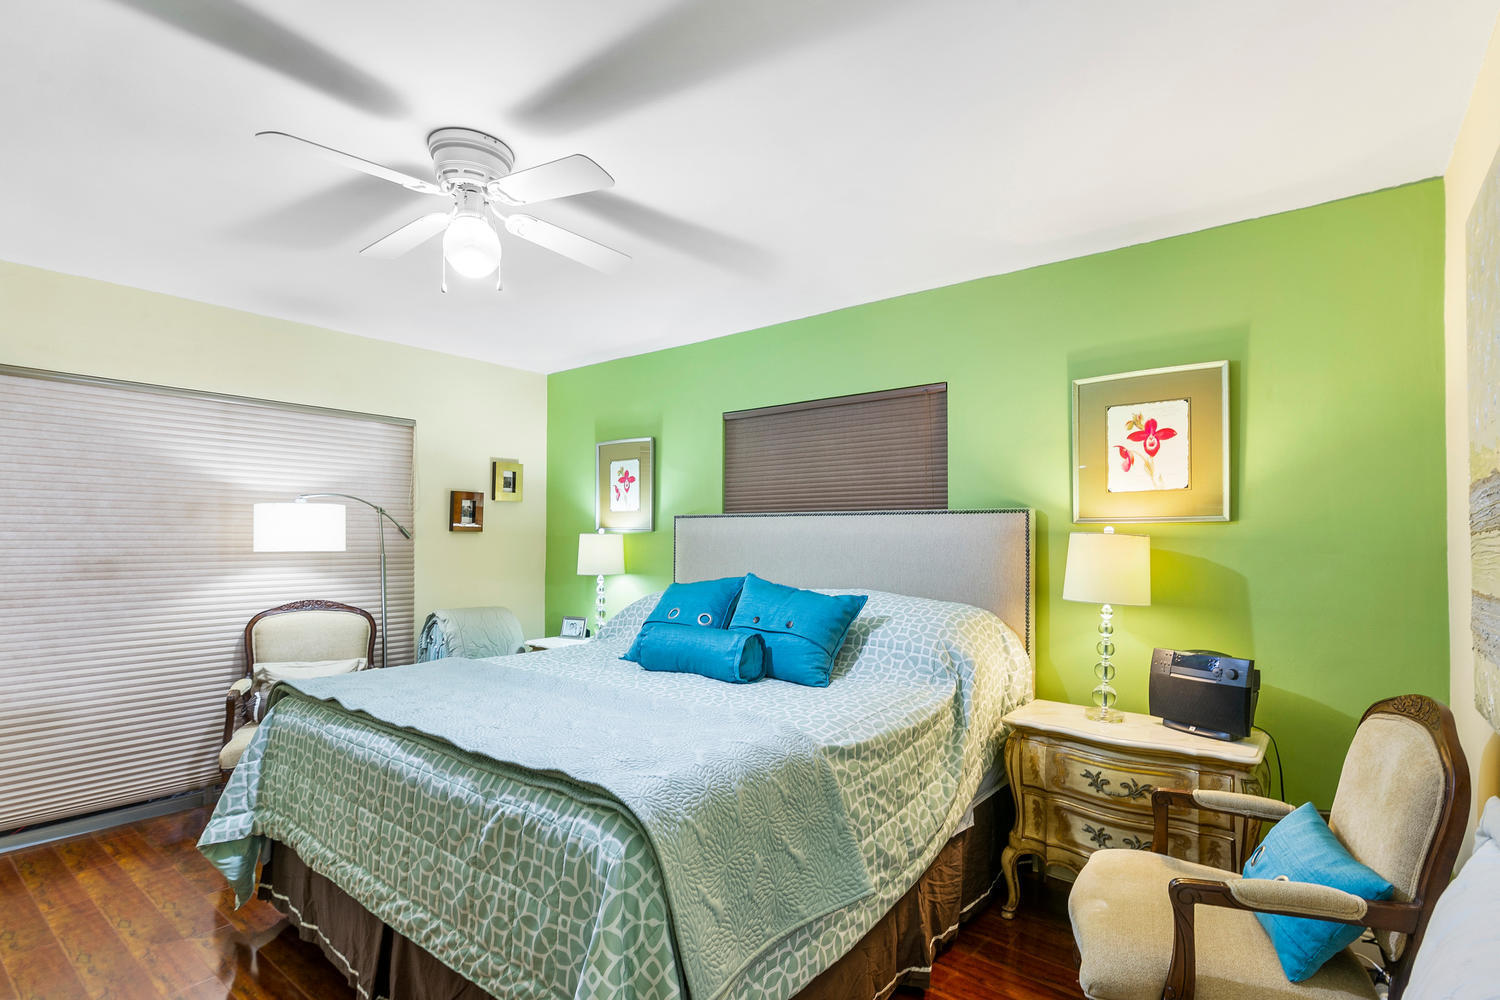 7204 NW 71st St-large-028-027-Bedroom-15